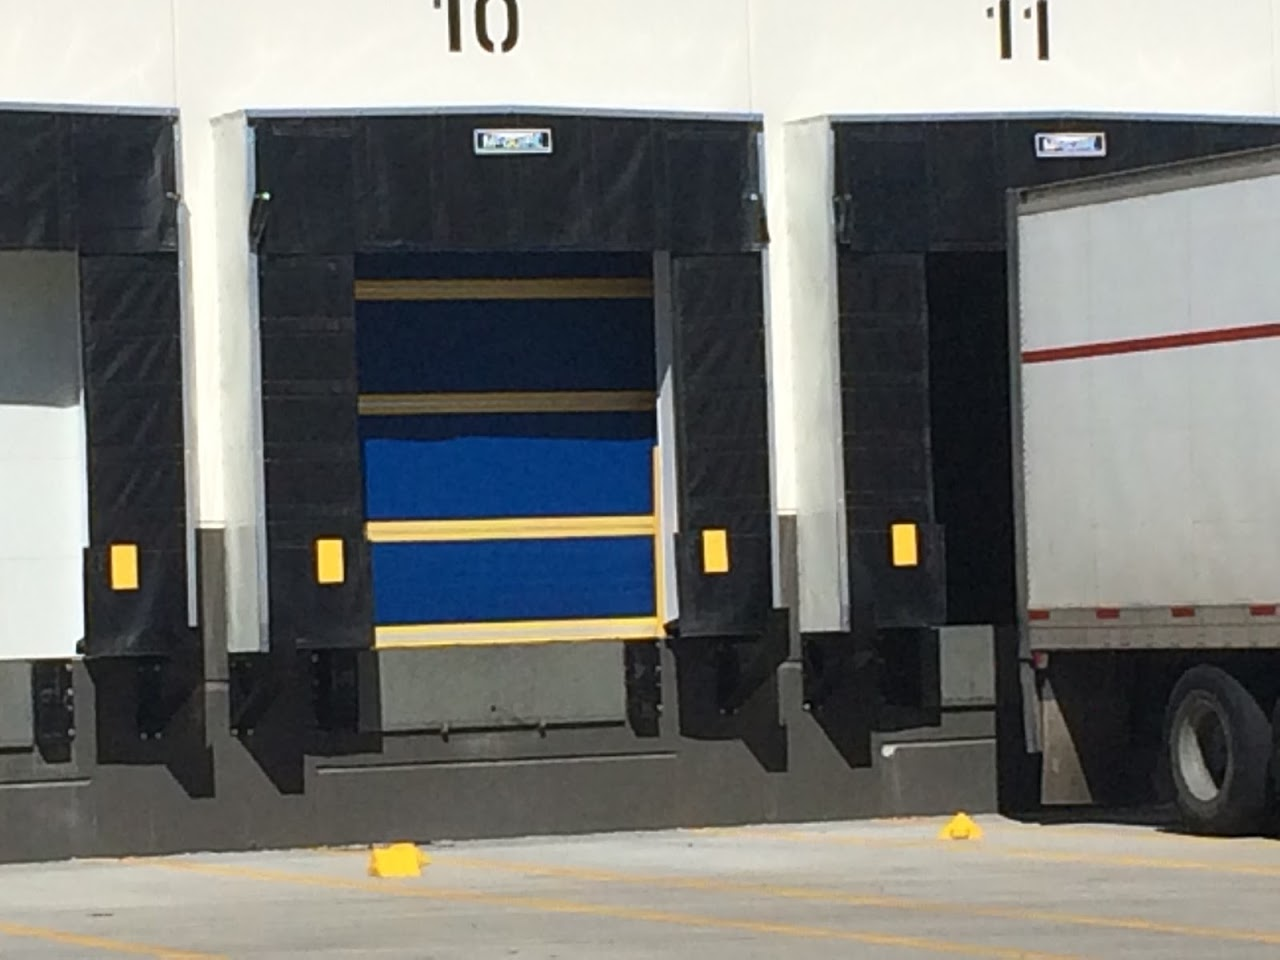 design the loading dock: determine the door, loading dock door with dock seal